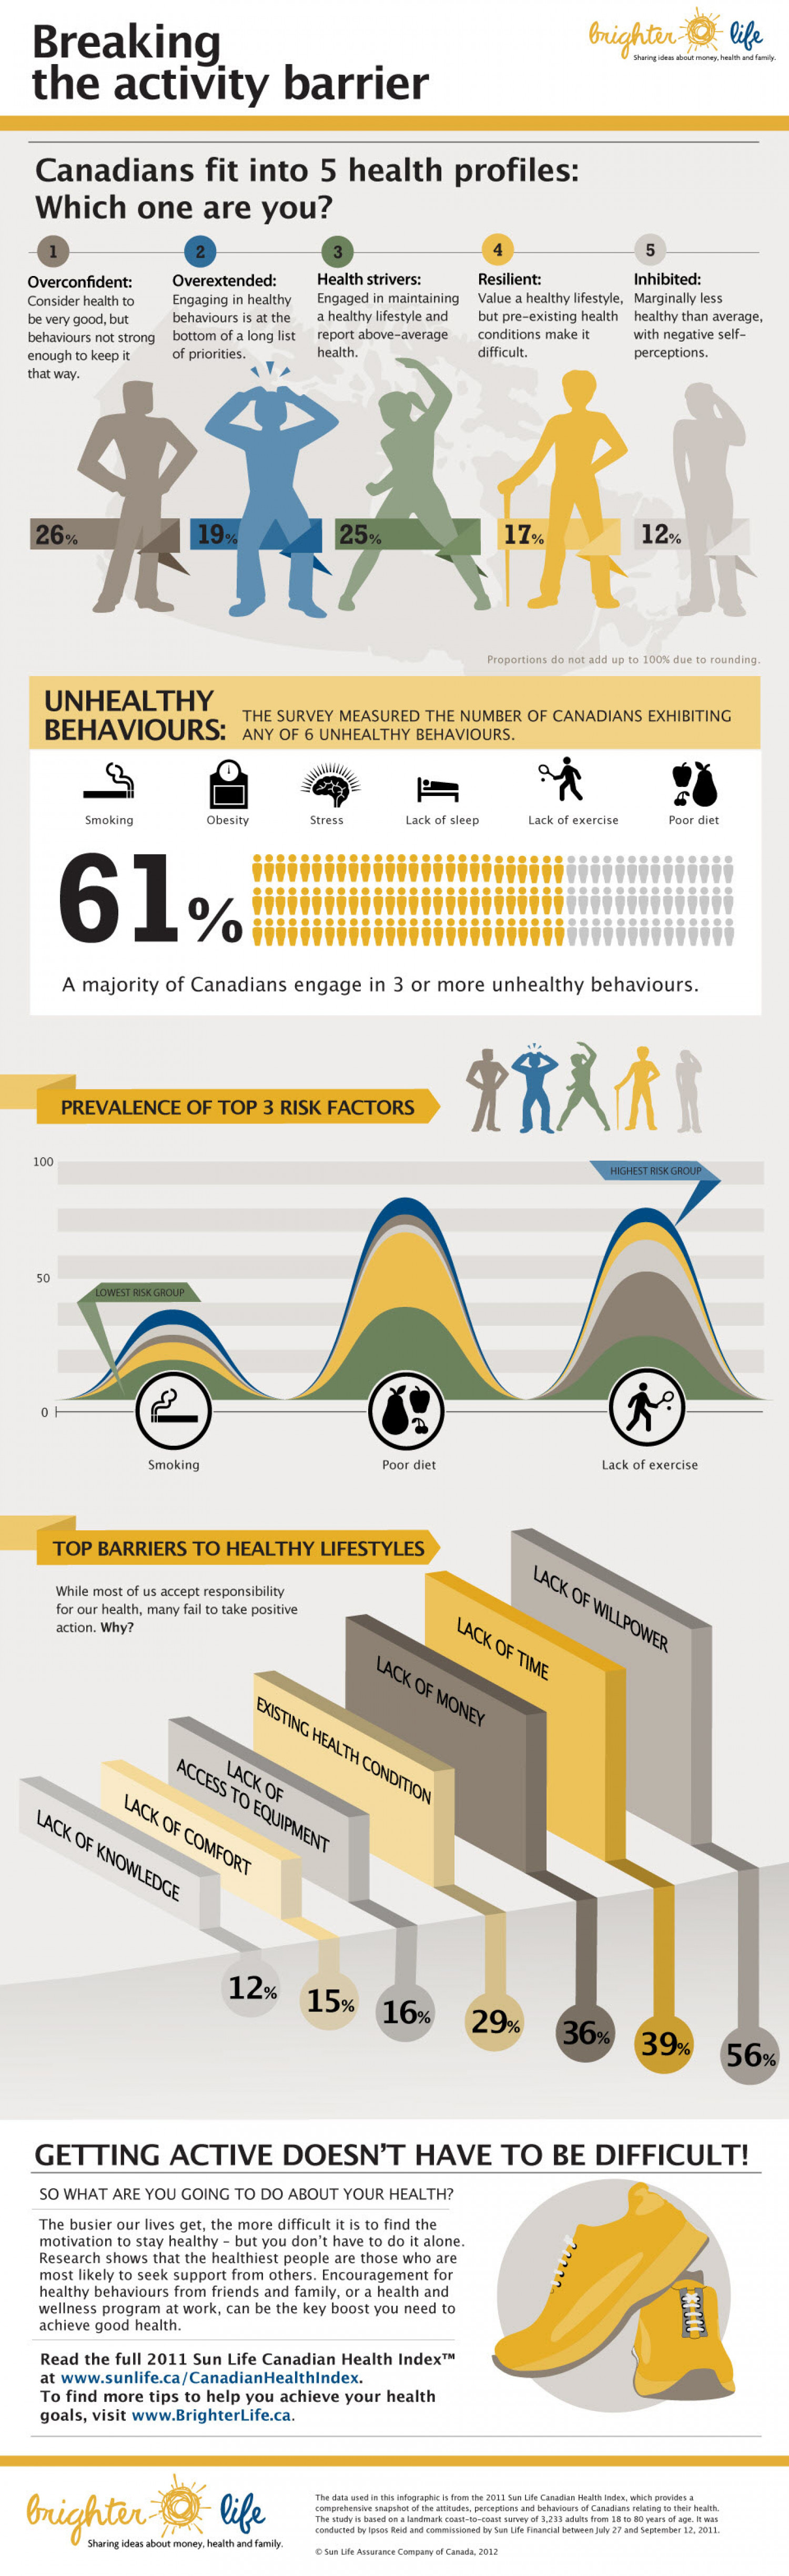 Breaking the Activity Barrier Infographic